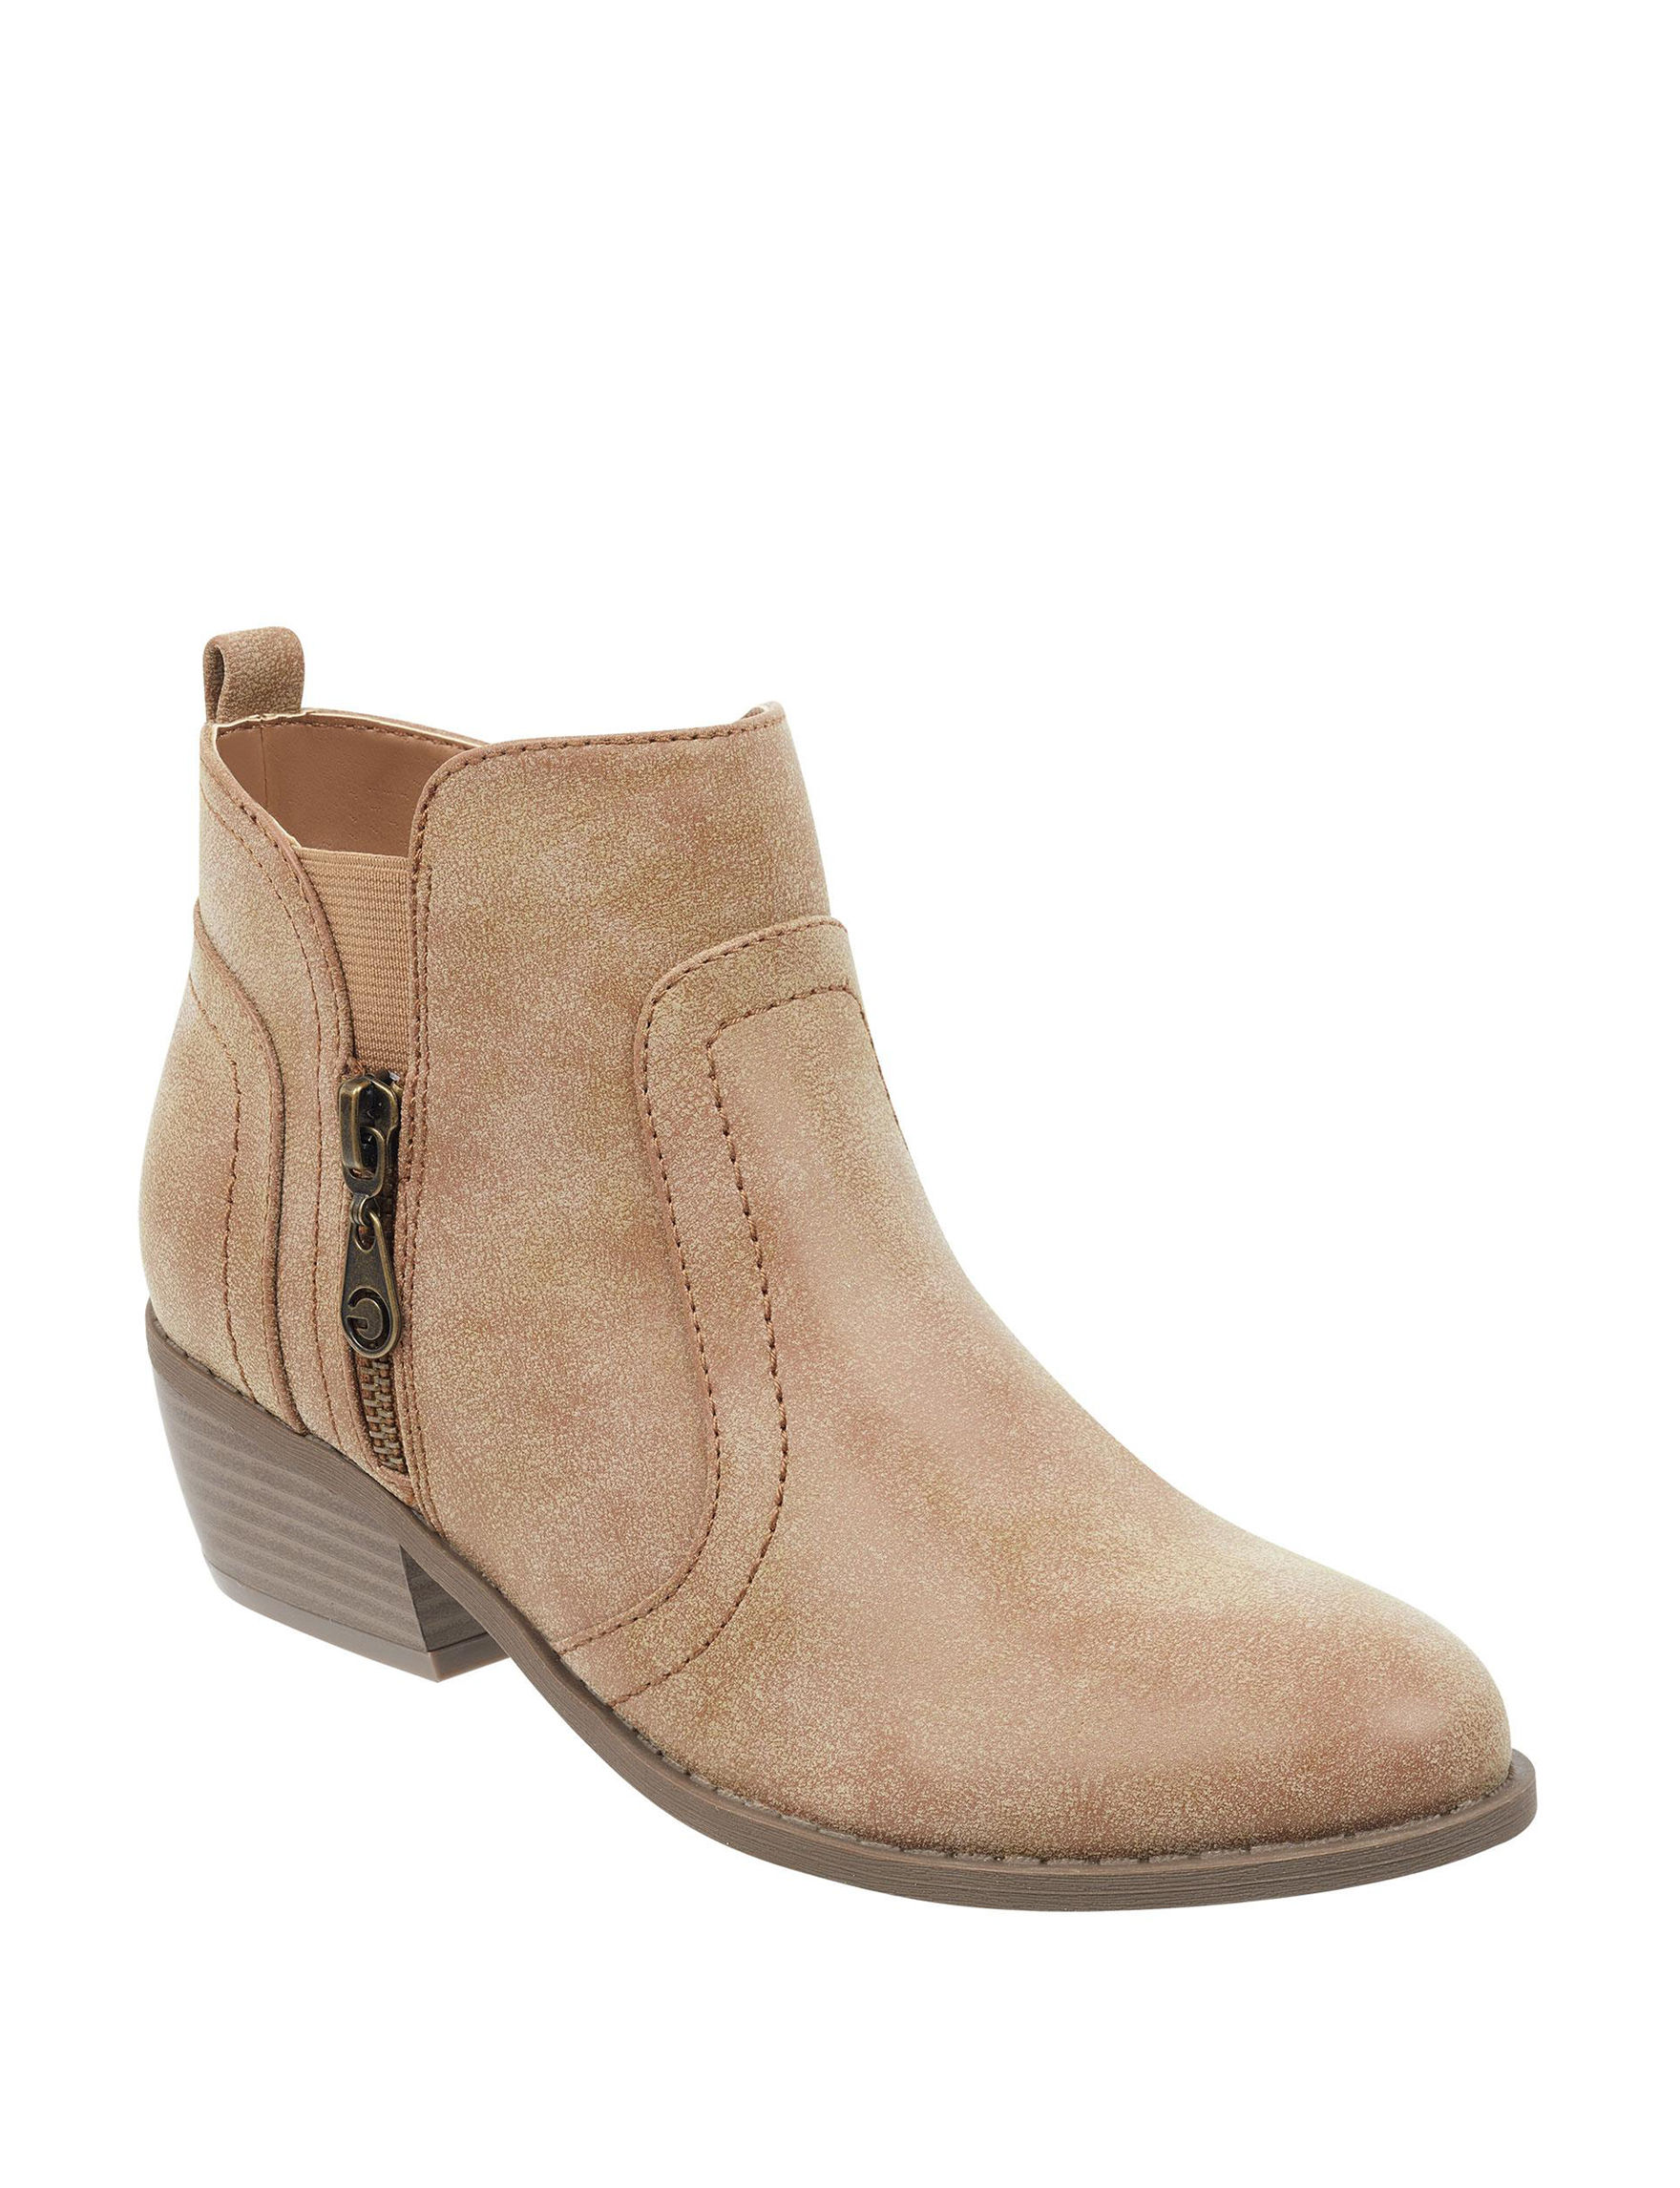 G by Guess Beige Ankle Boots & Booties